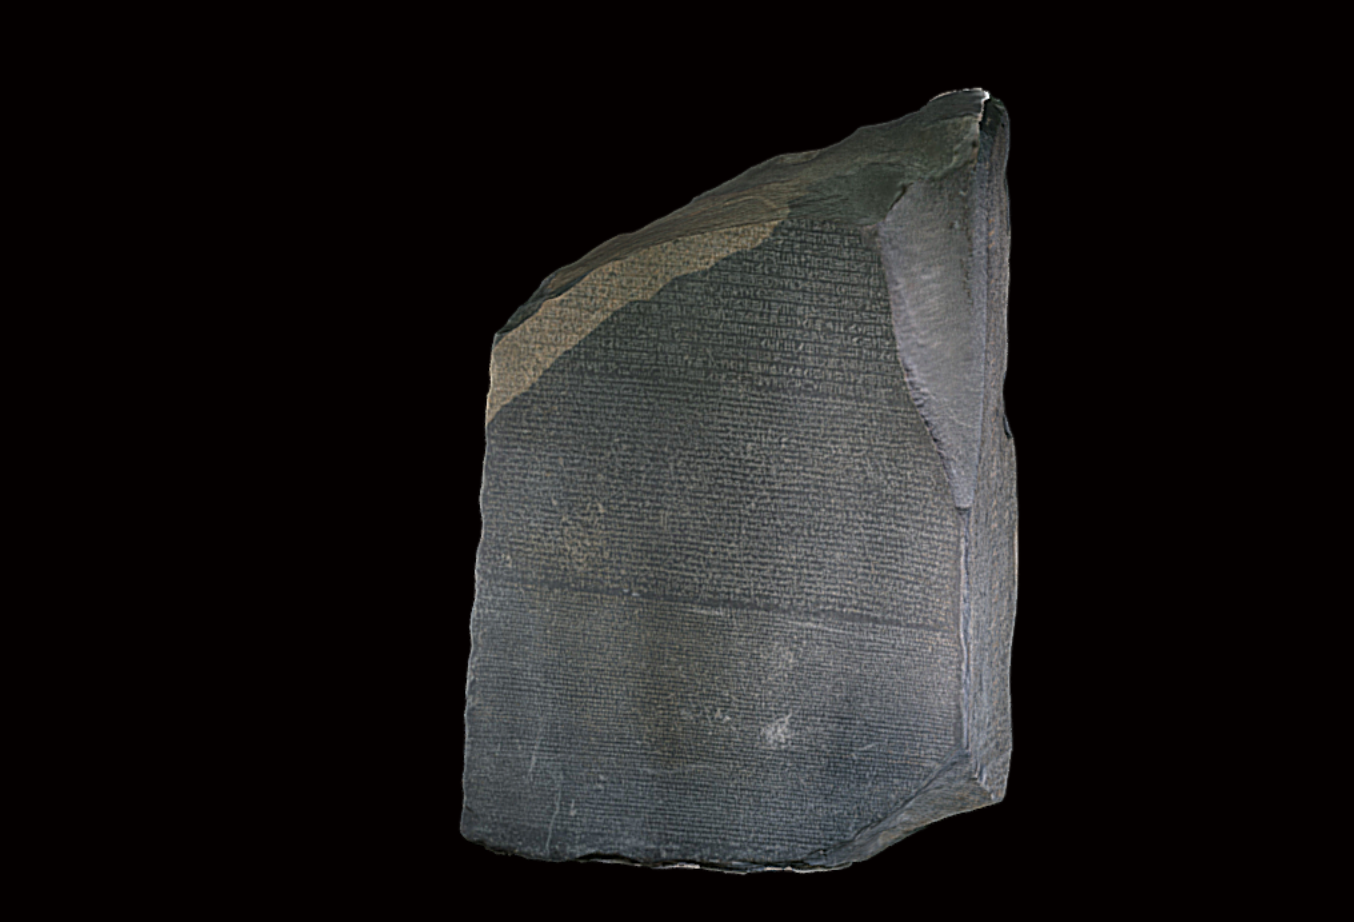 The British Museum Creates 3D Models of the Rosetta Stone & 200+ Other Historic Artifacts: Download or View in Virtual Reality